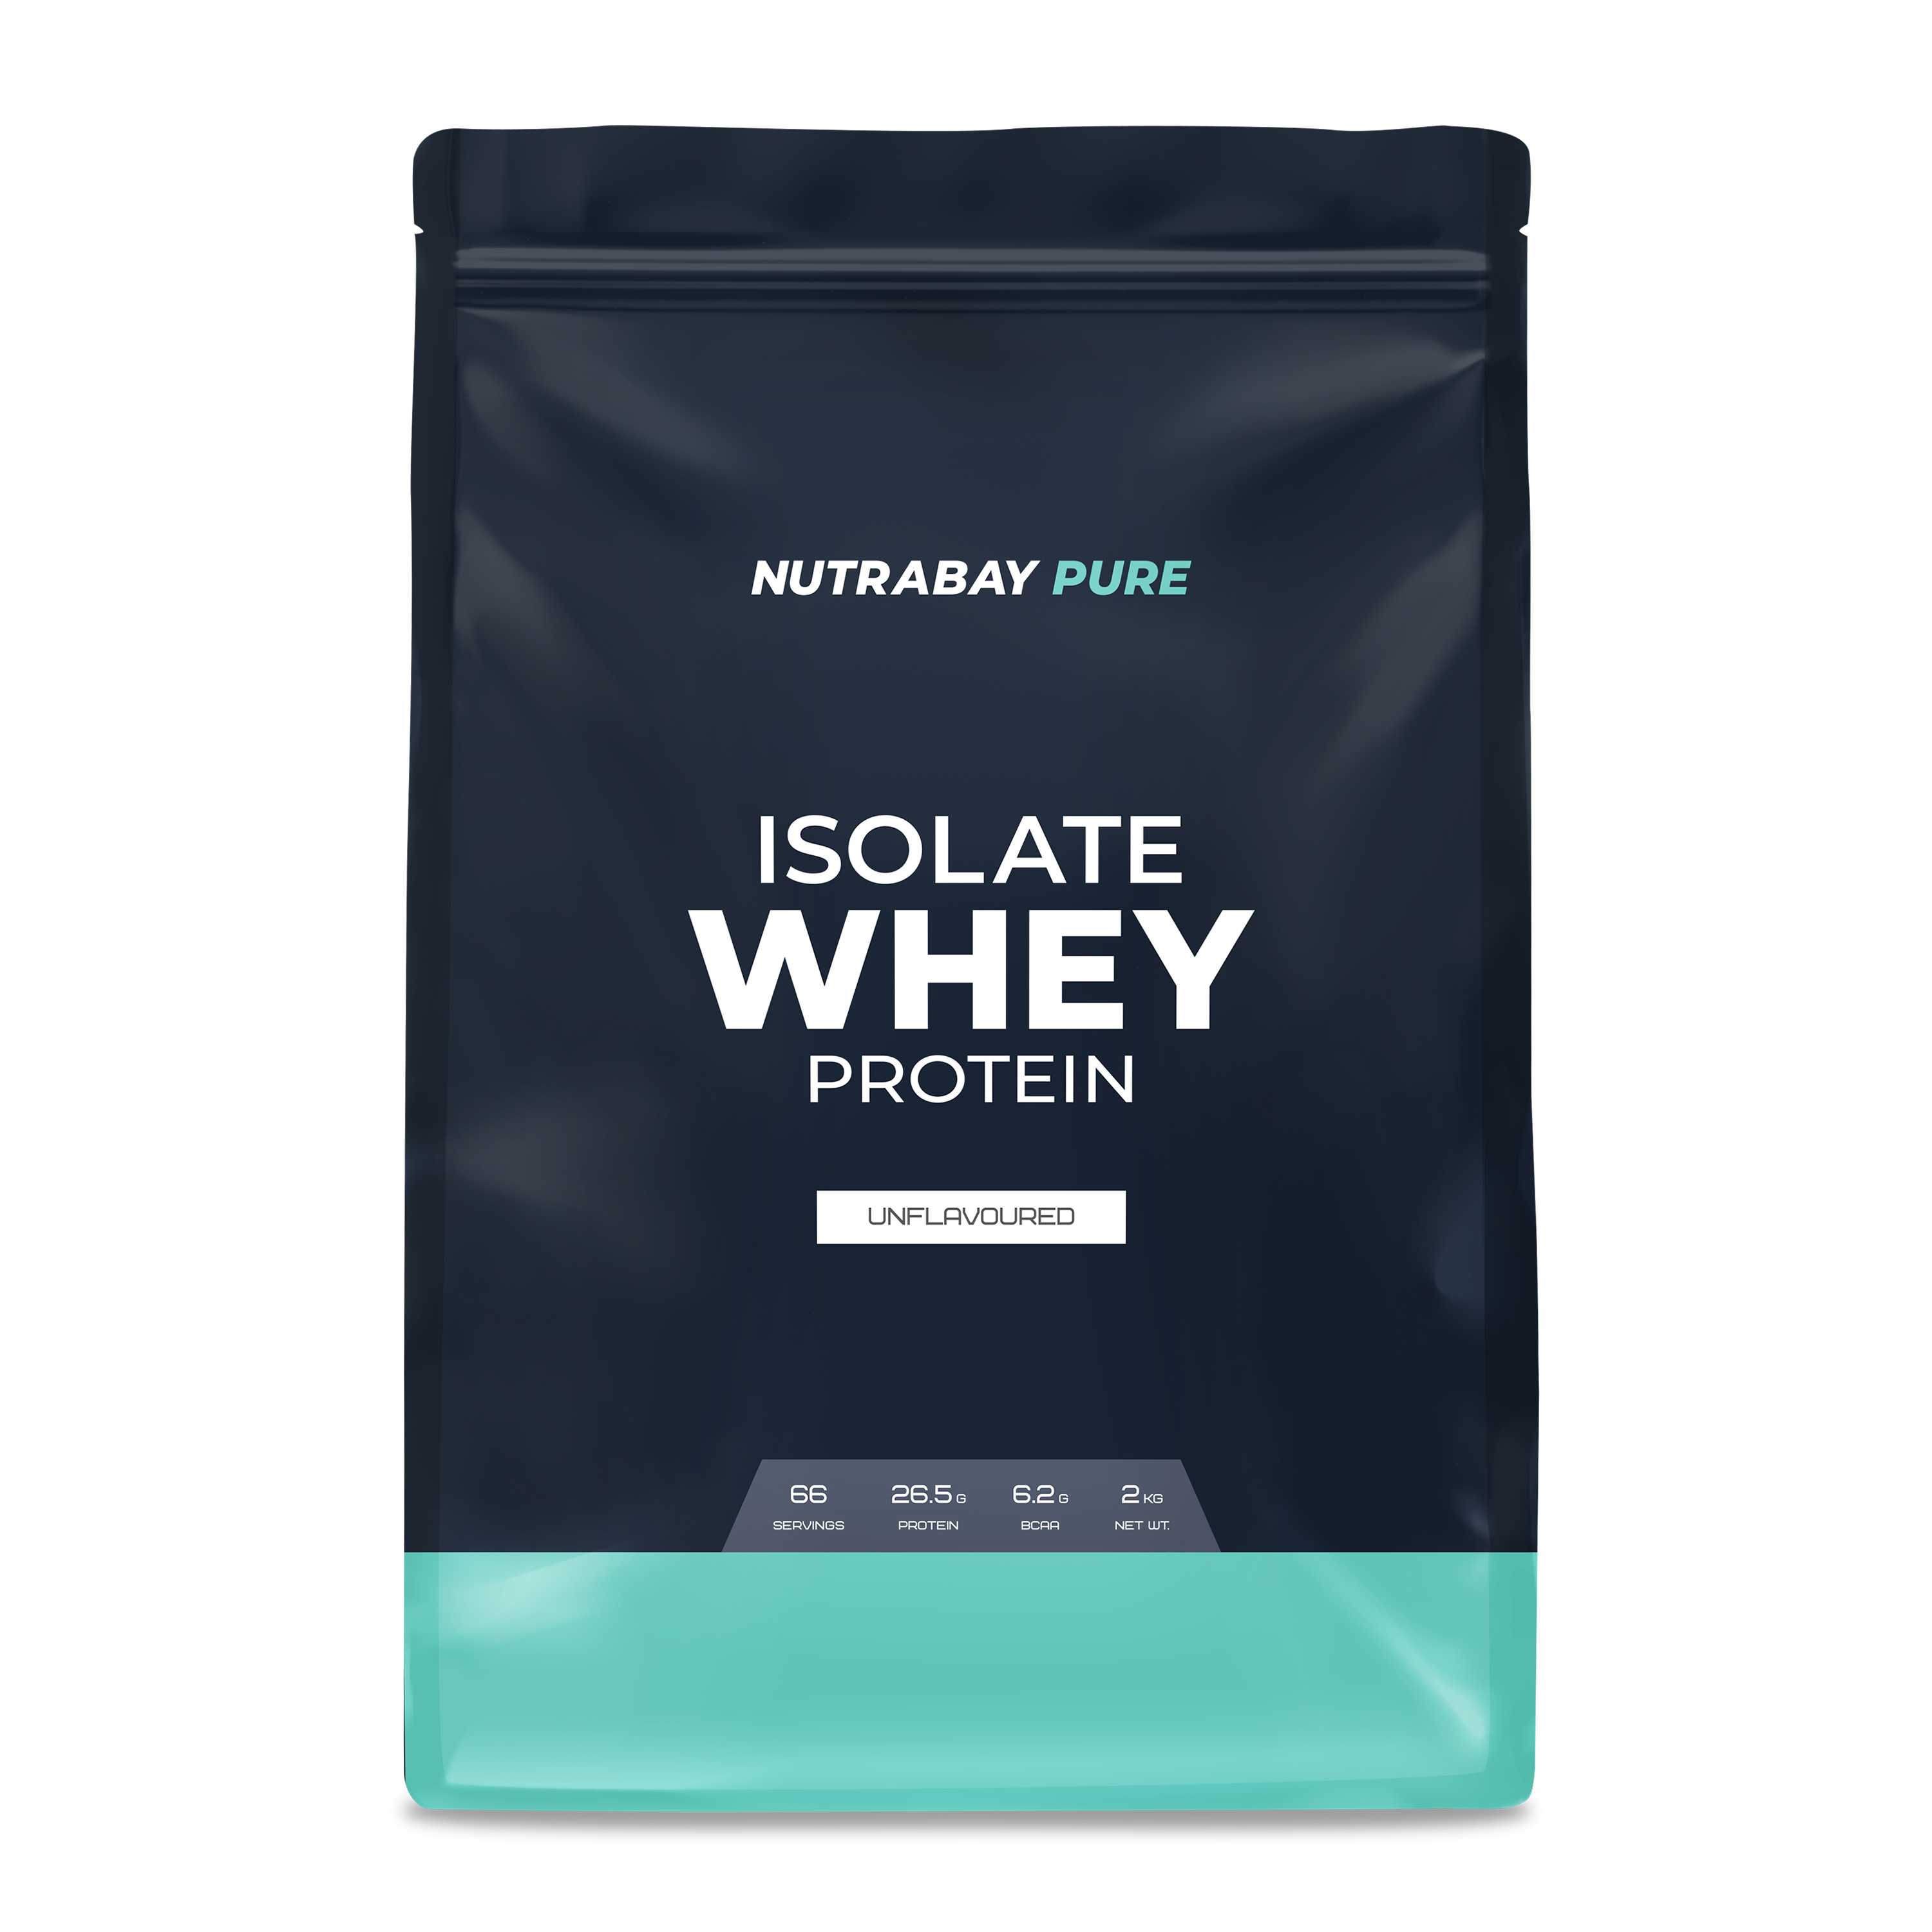 Nutrabay Pure Whey Protein Isolate